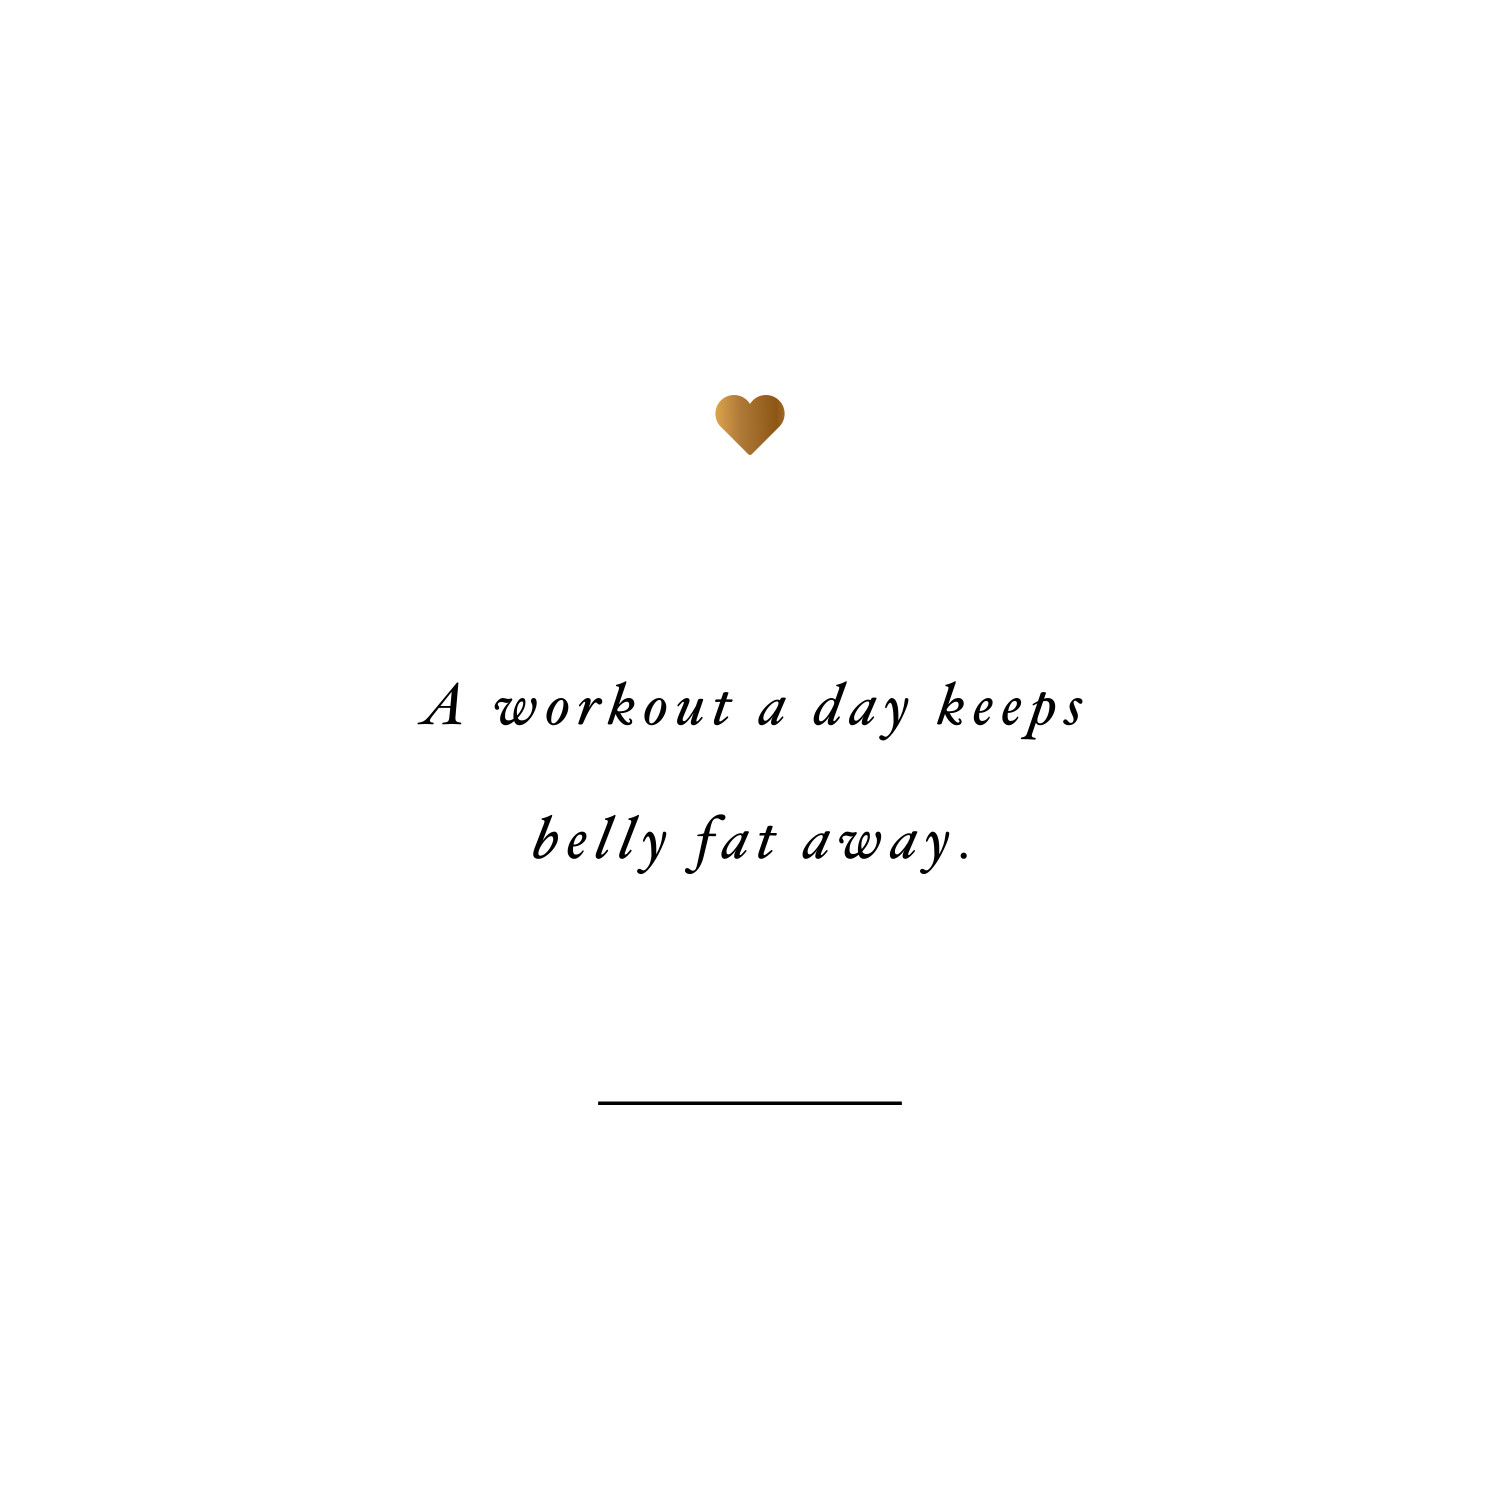 A workout a day keeps belly fat away! Browse our collection of motivational health and weight loss quotes and get instant wellness and fitness inspiration. Transform positive thoughts into positive actions and get fit, healthy and happy! https://www.spotebi.com/workout-motivation/a-workout-a-day-keeps-belly-fat-away/